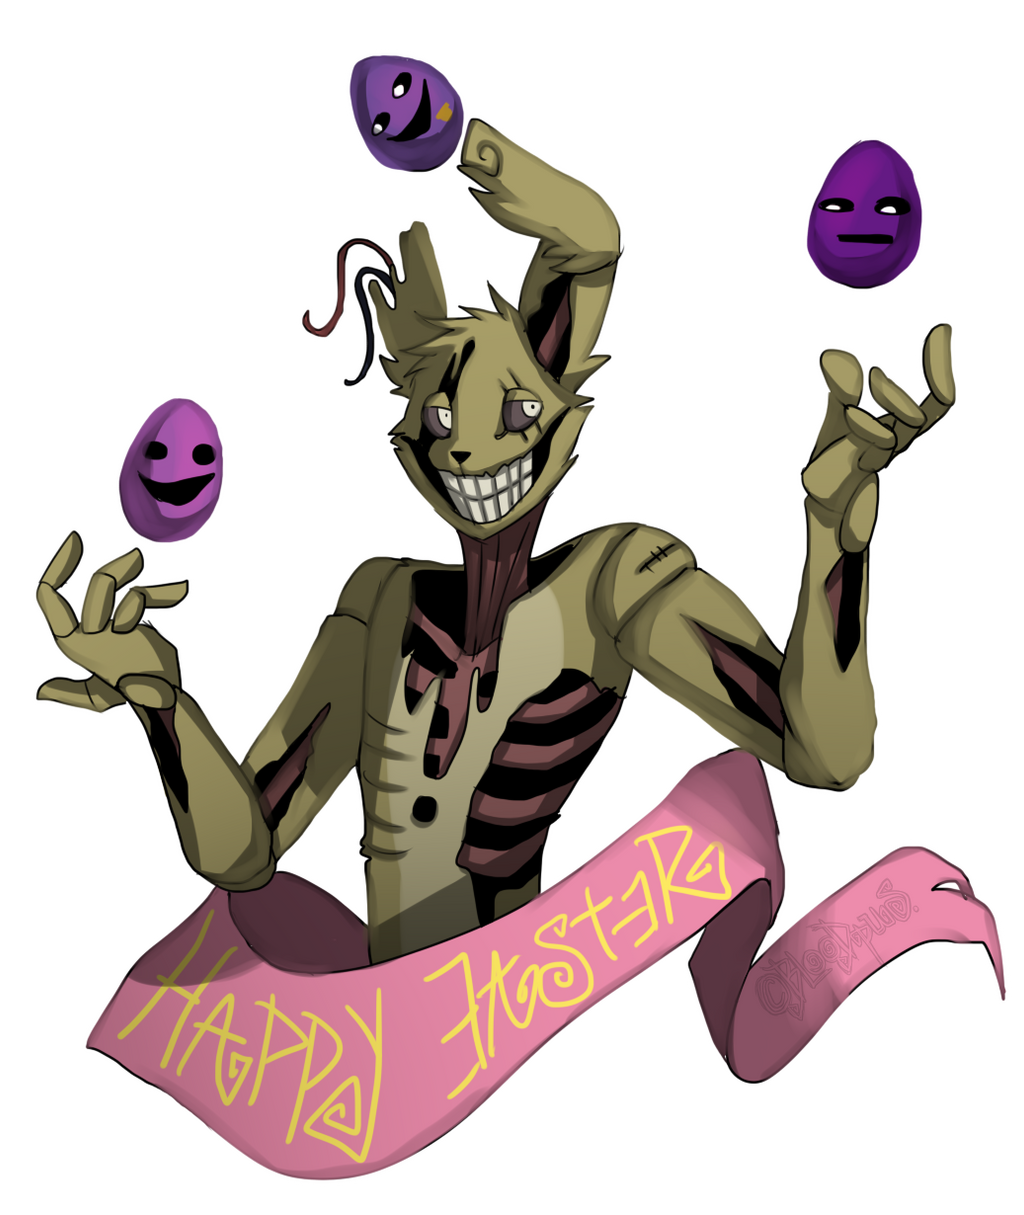 Happy Easter From Springtrap! (By Bloodpus But I Can't